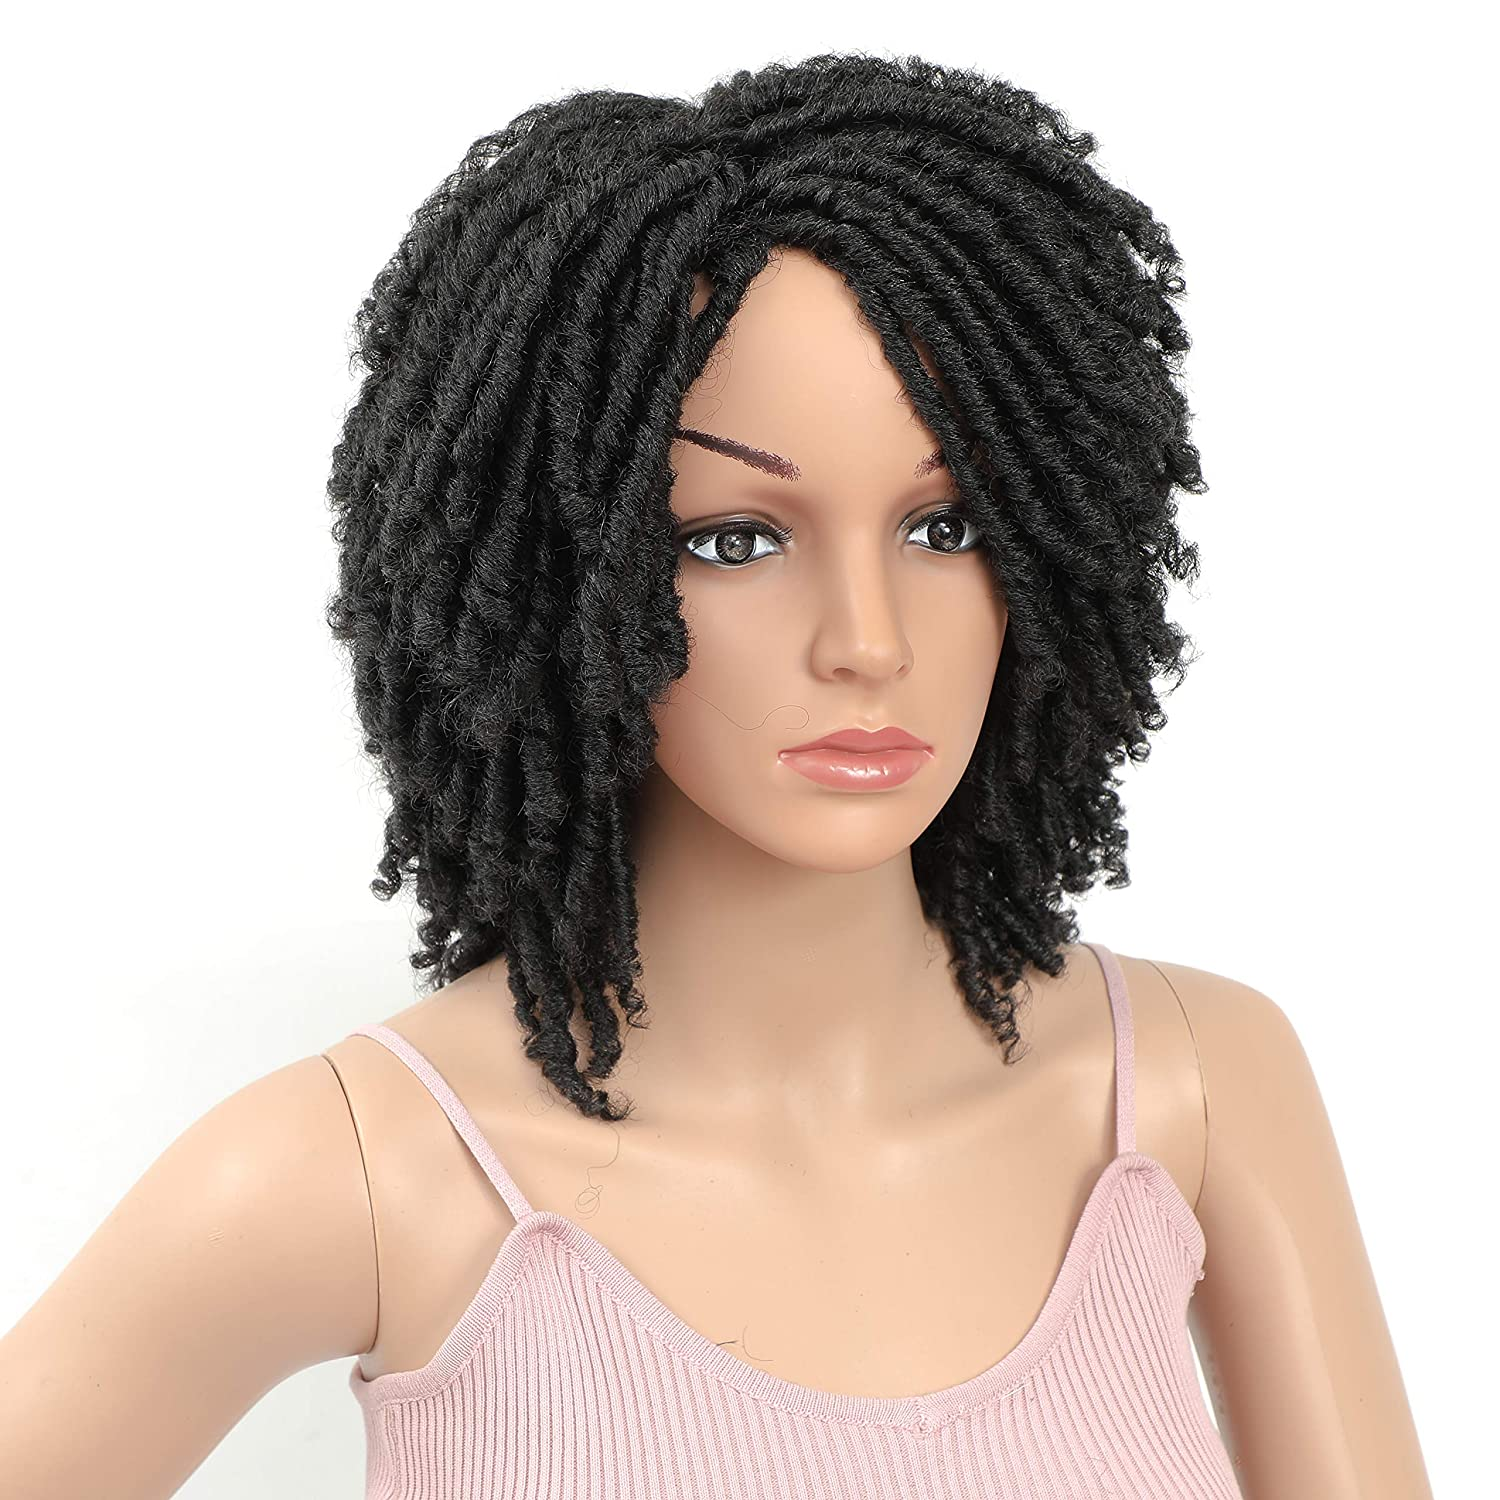 HUA MIAN LI Short Dreadlock Wig 6inch Soft Twist Crochet Braids Afro Short Curly Synthetic Wig with Curly Ends Faux Locs Braids Hair Wig for Women